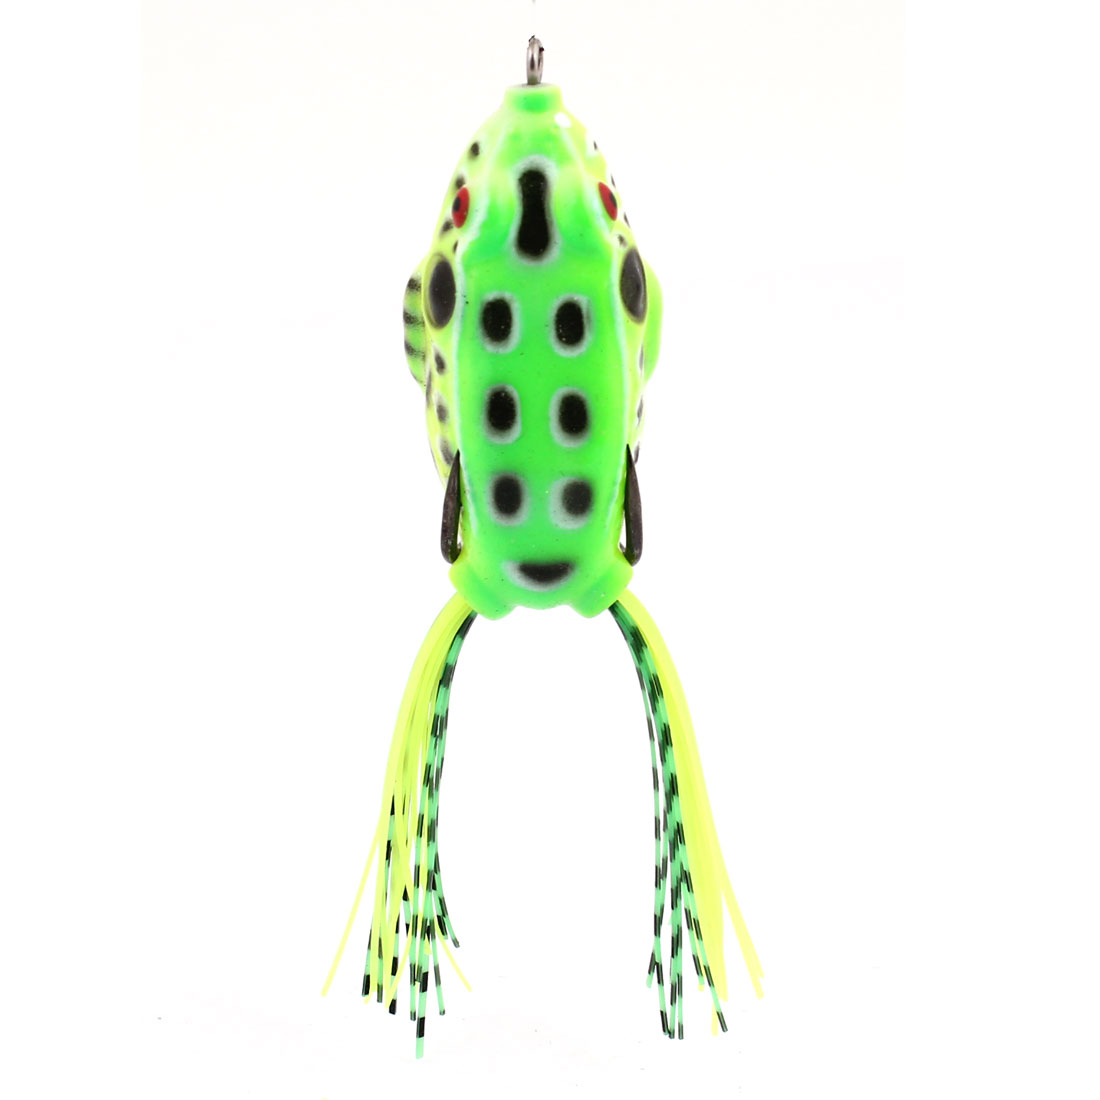 Green White Manmade Soft Silicone Frog Shaped Fishing Lure w Fish Hook